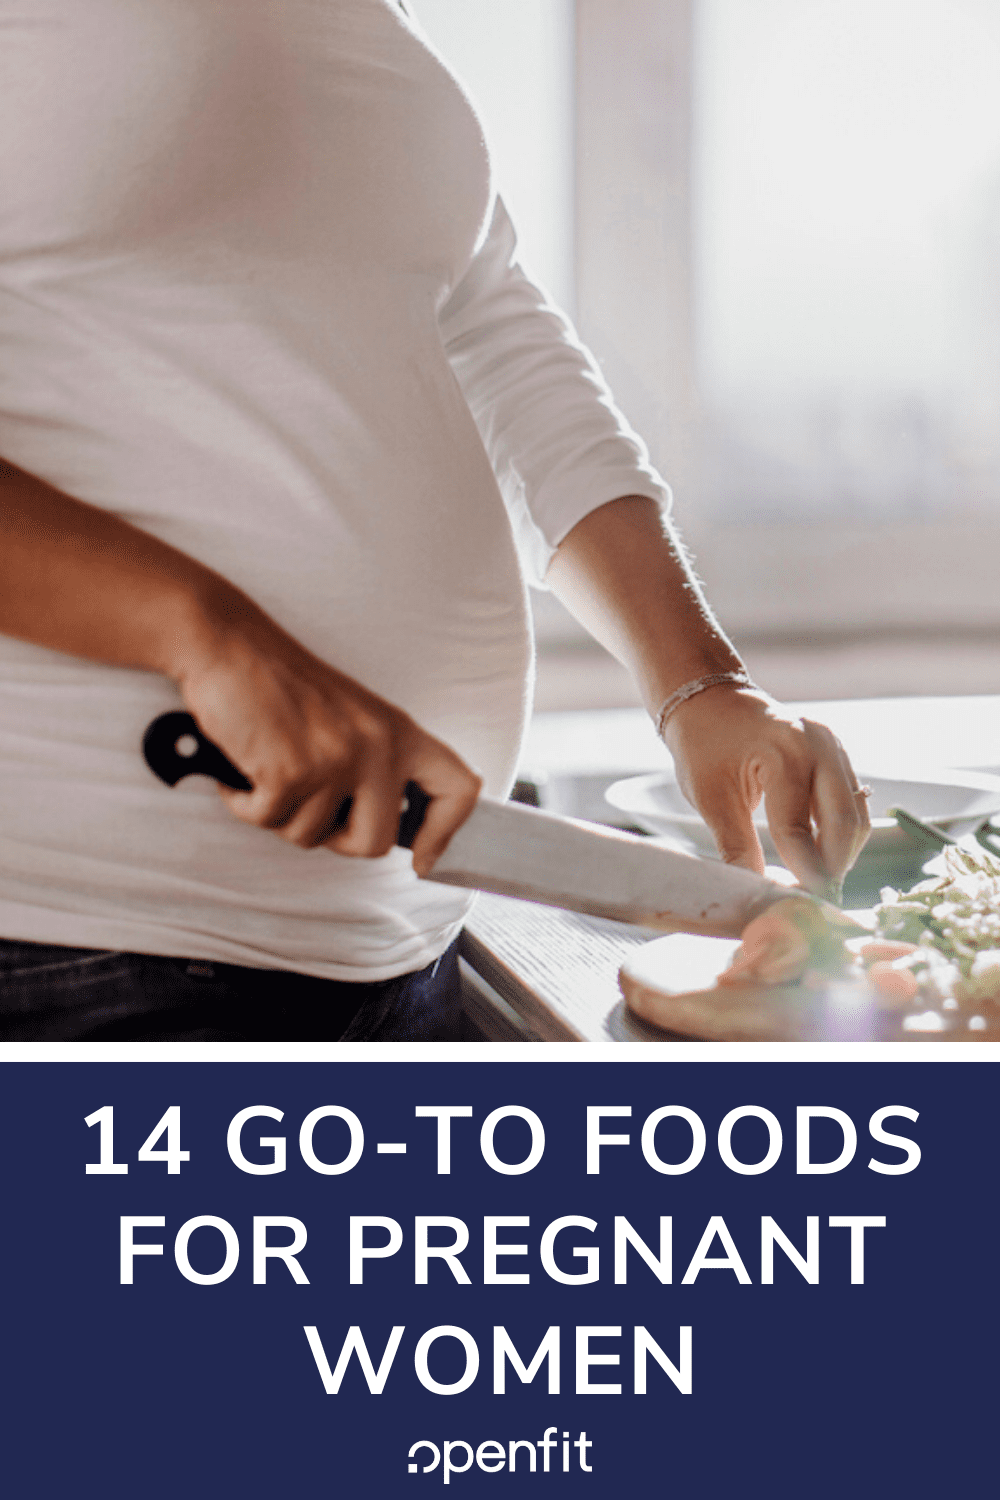 food for pregnant women - pin image